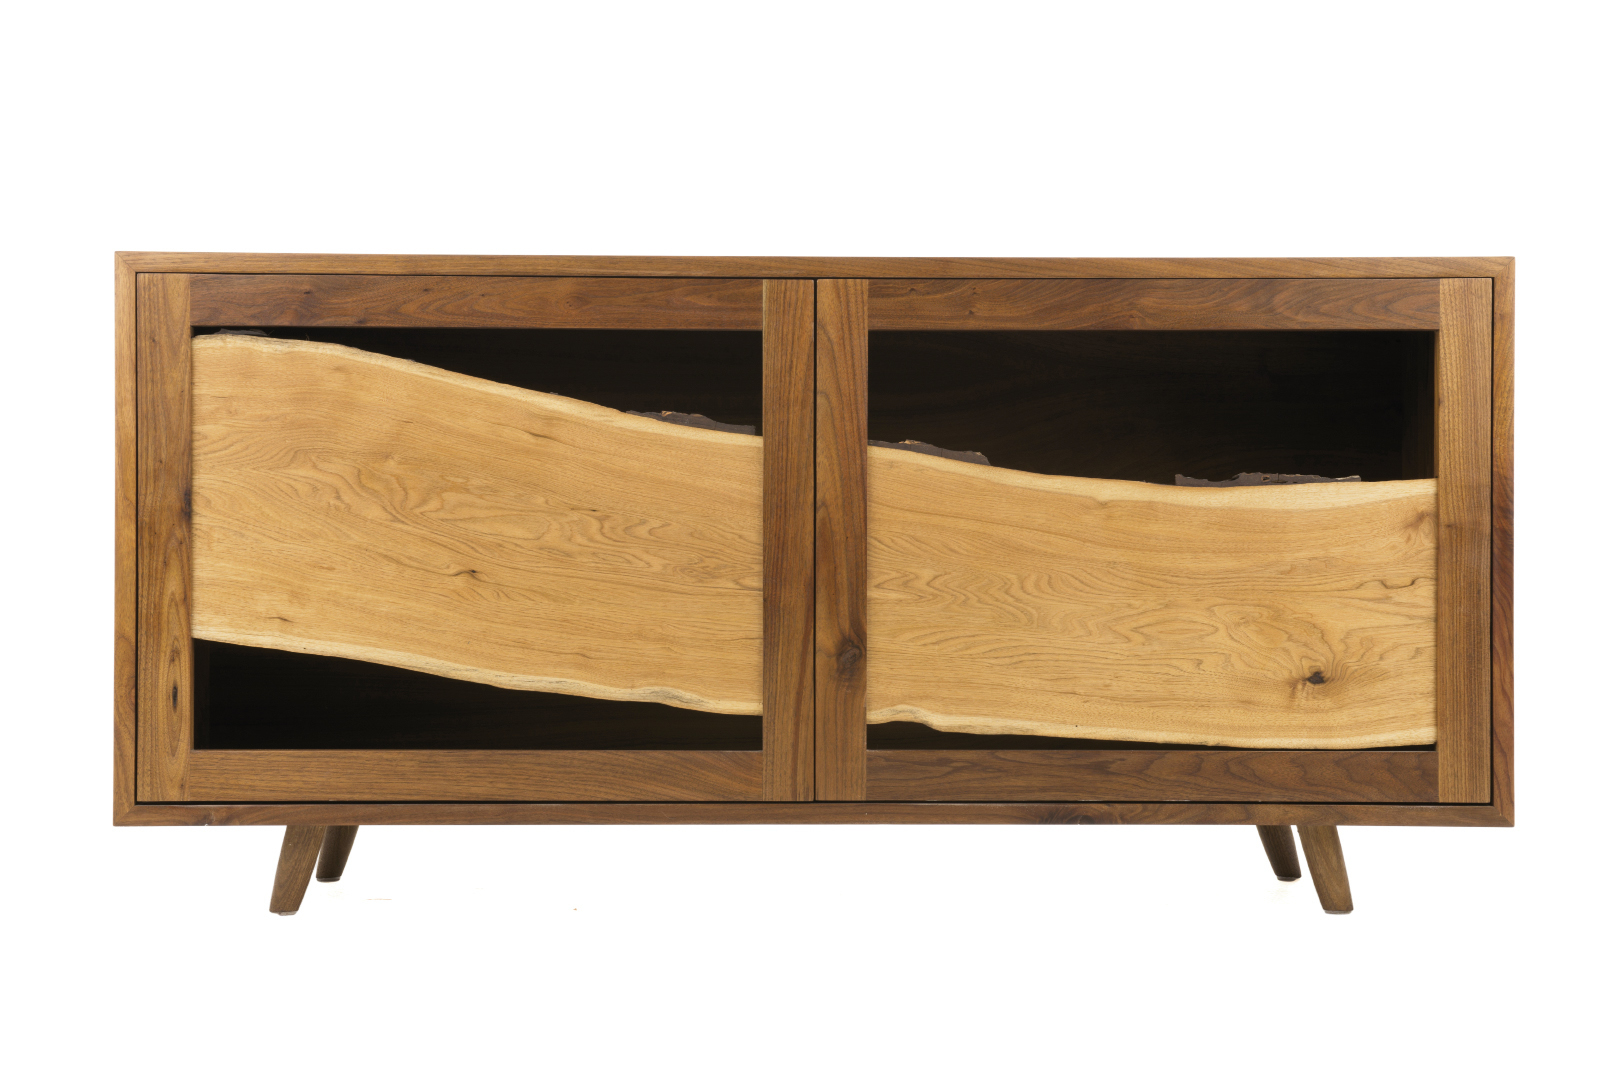 Butternut Sweep cabinet by Moran Woodworked Furniture